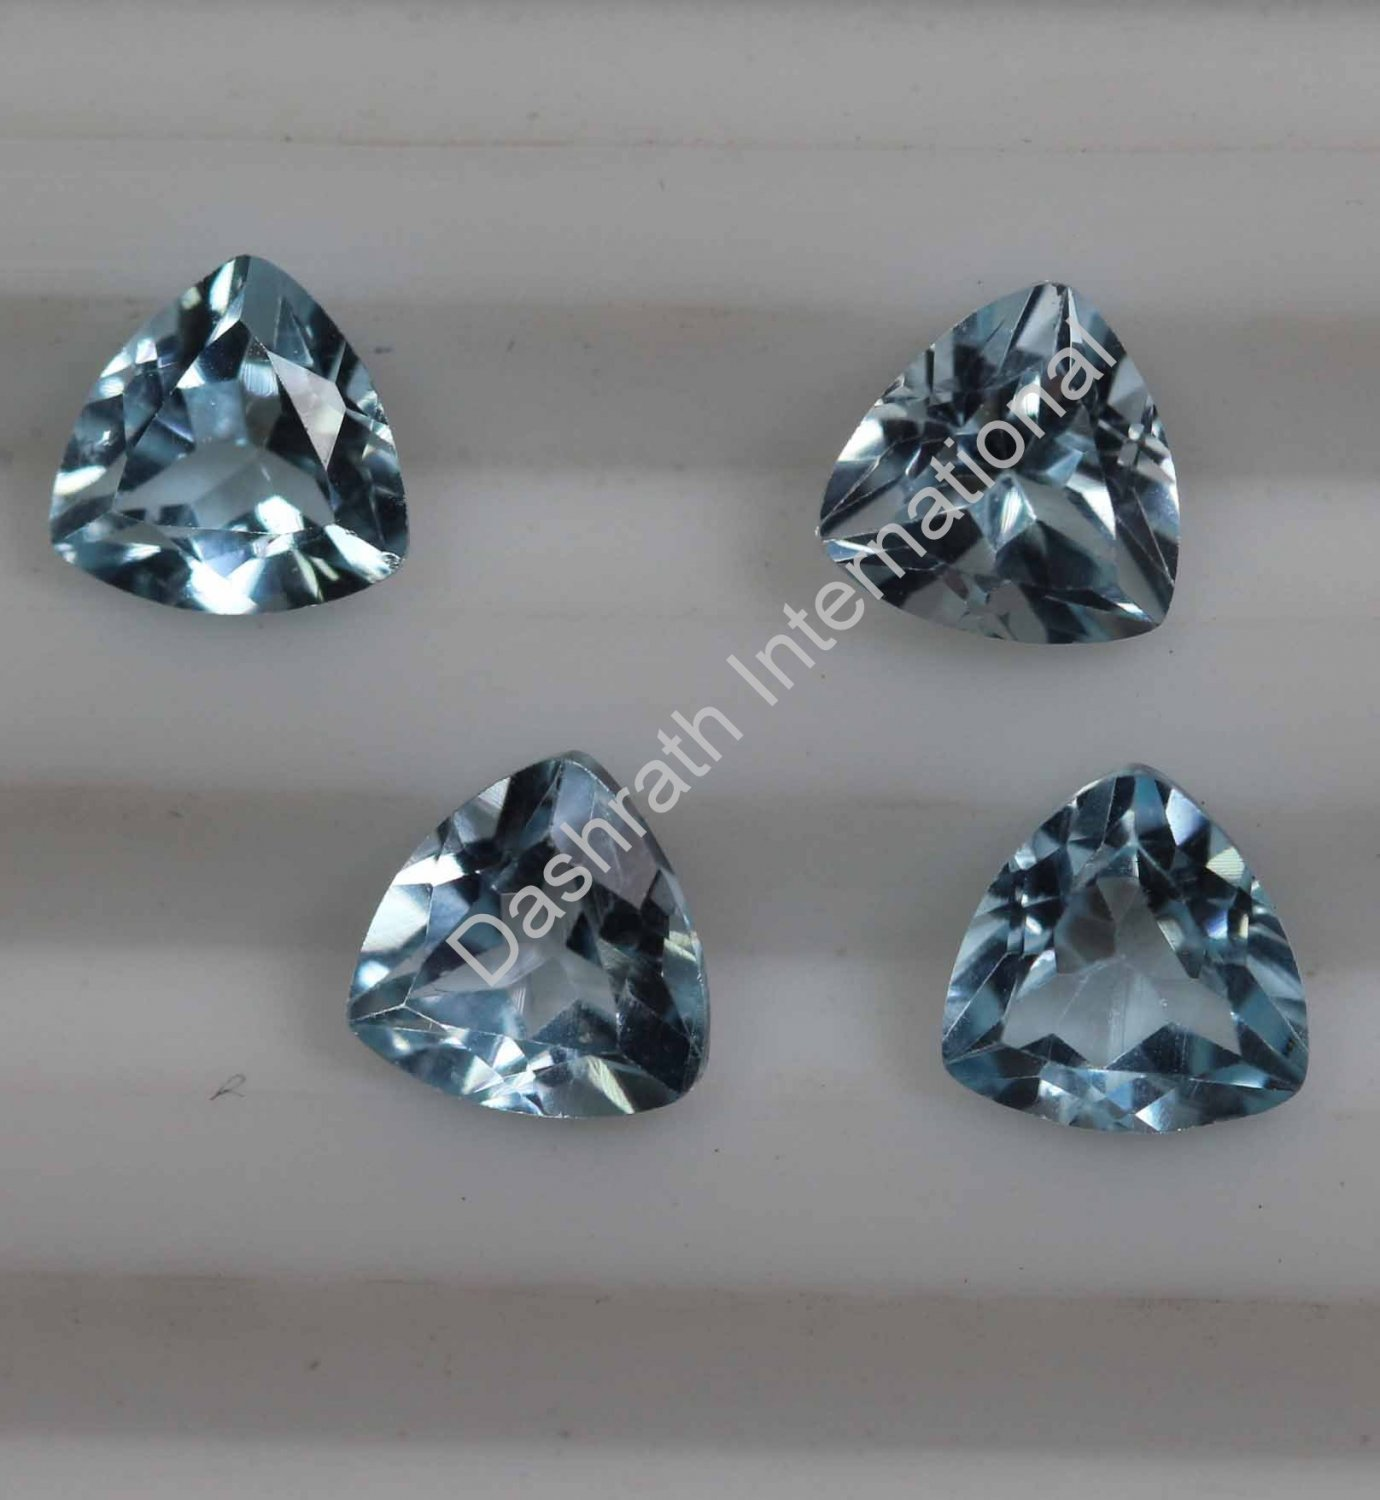 7mm Natural Sky Blue Topaz Faceted Cut Trillion 5 Pieces Lot Top Quality Loose Gemstone